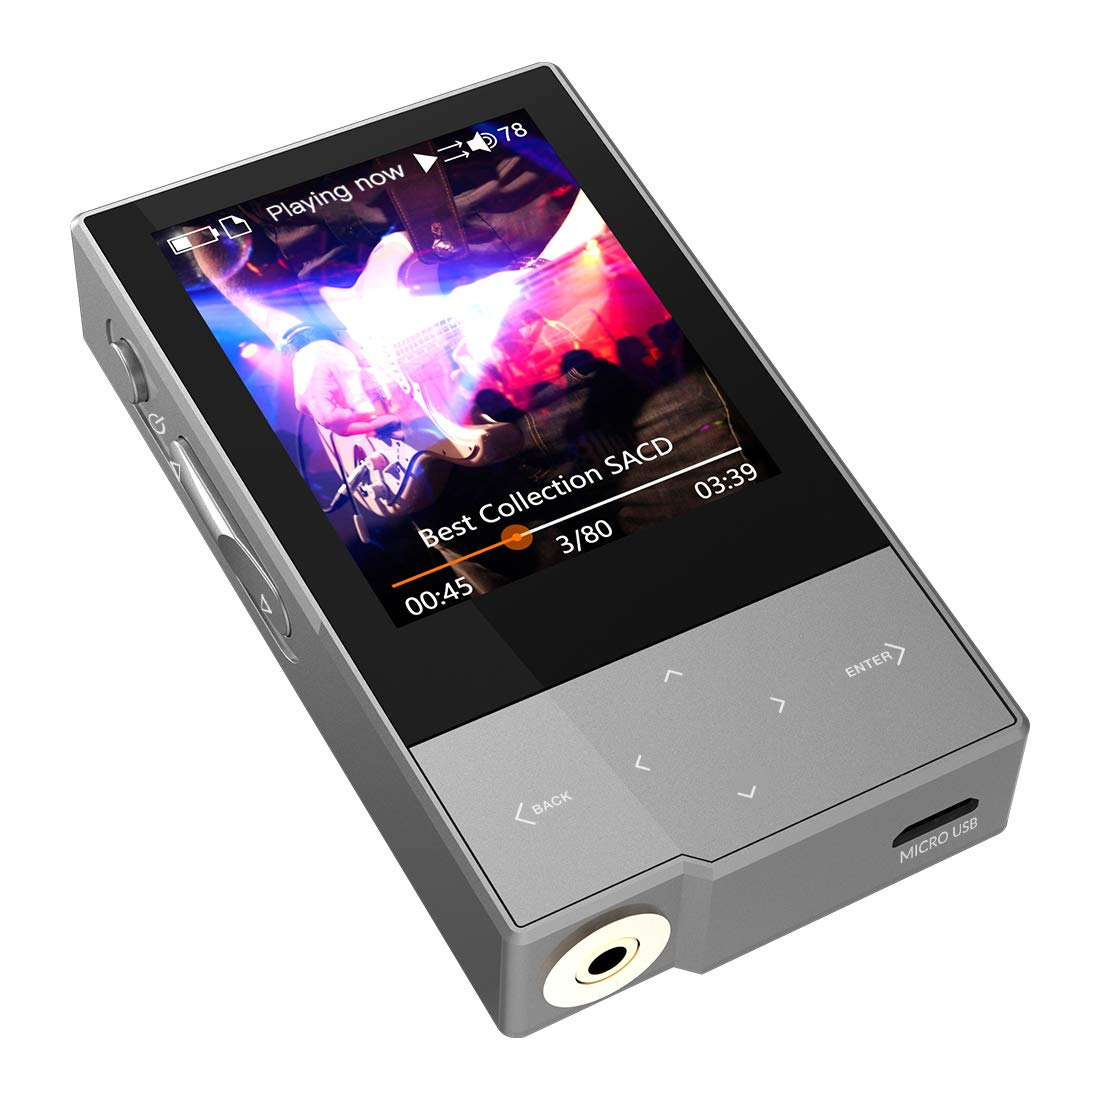 HIDIZS AP60 Ⅱ Bluetooth MP3 Player Digital Audio Player HiFi Lossless Music Player Hi-Res Audio Player with SD Card Slot,Support Up to 256GB (Grey)